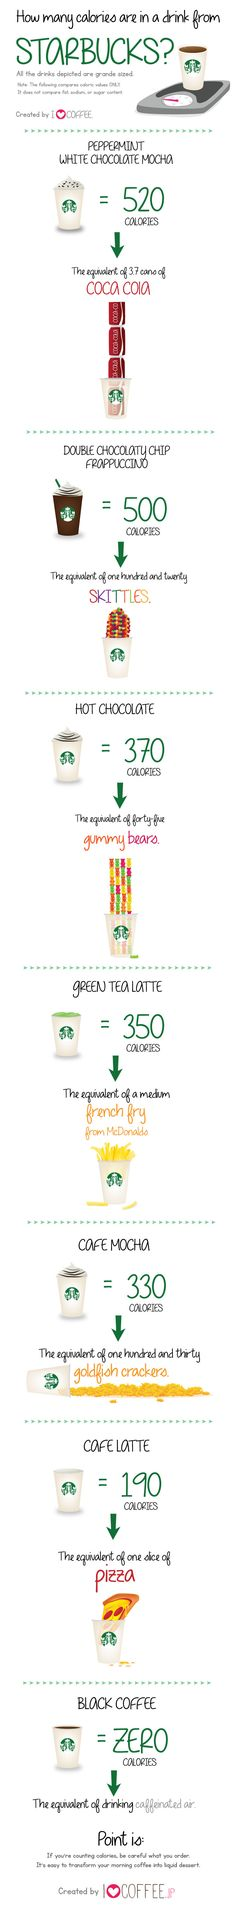 How Many Calories Are In A Drink From Starbucks Infographic